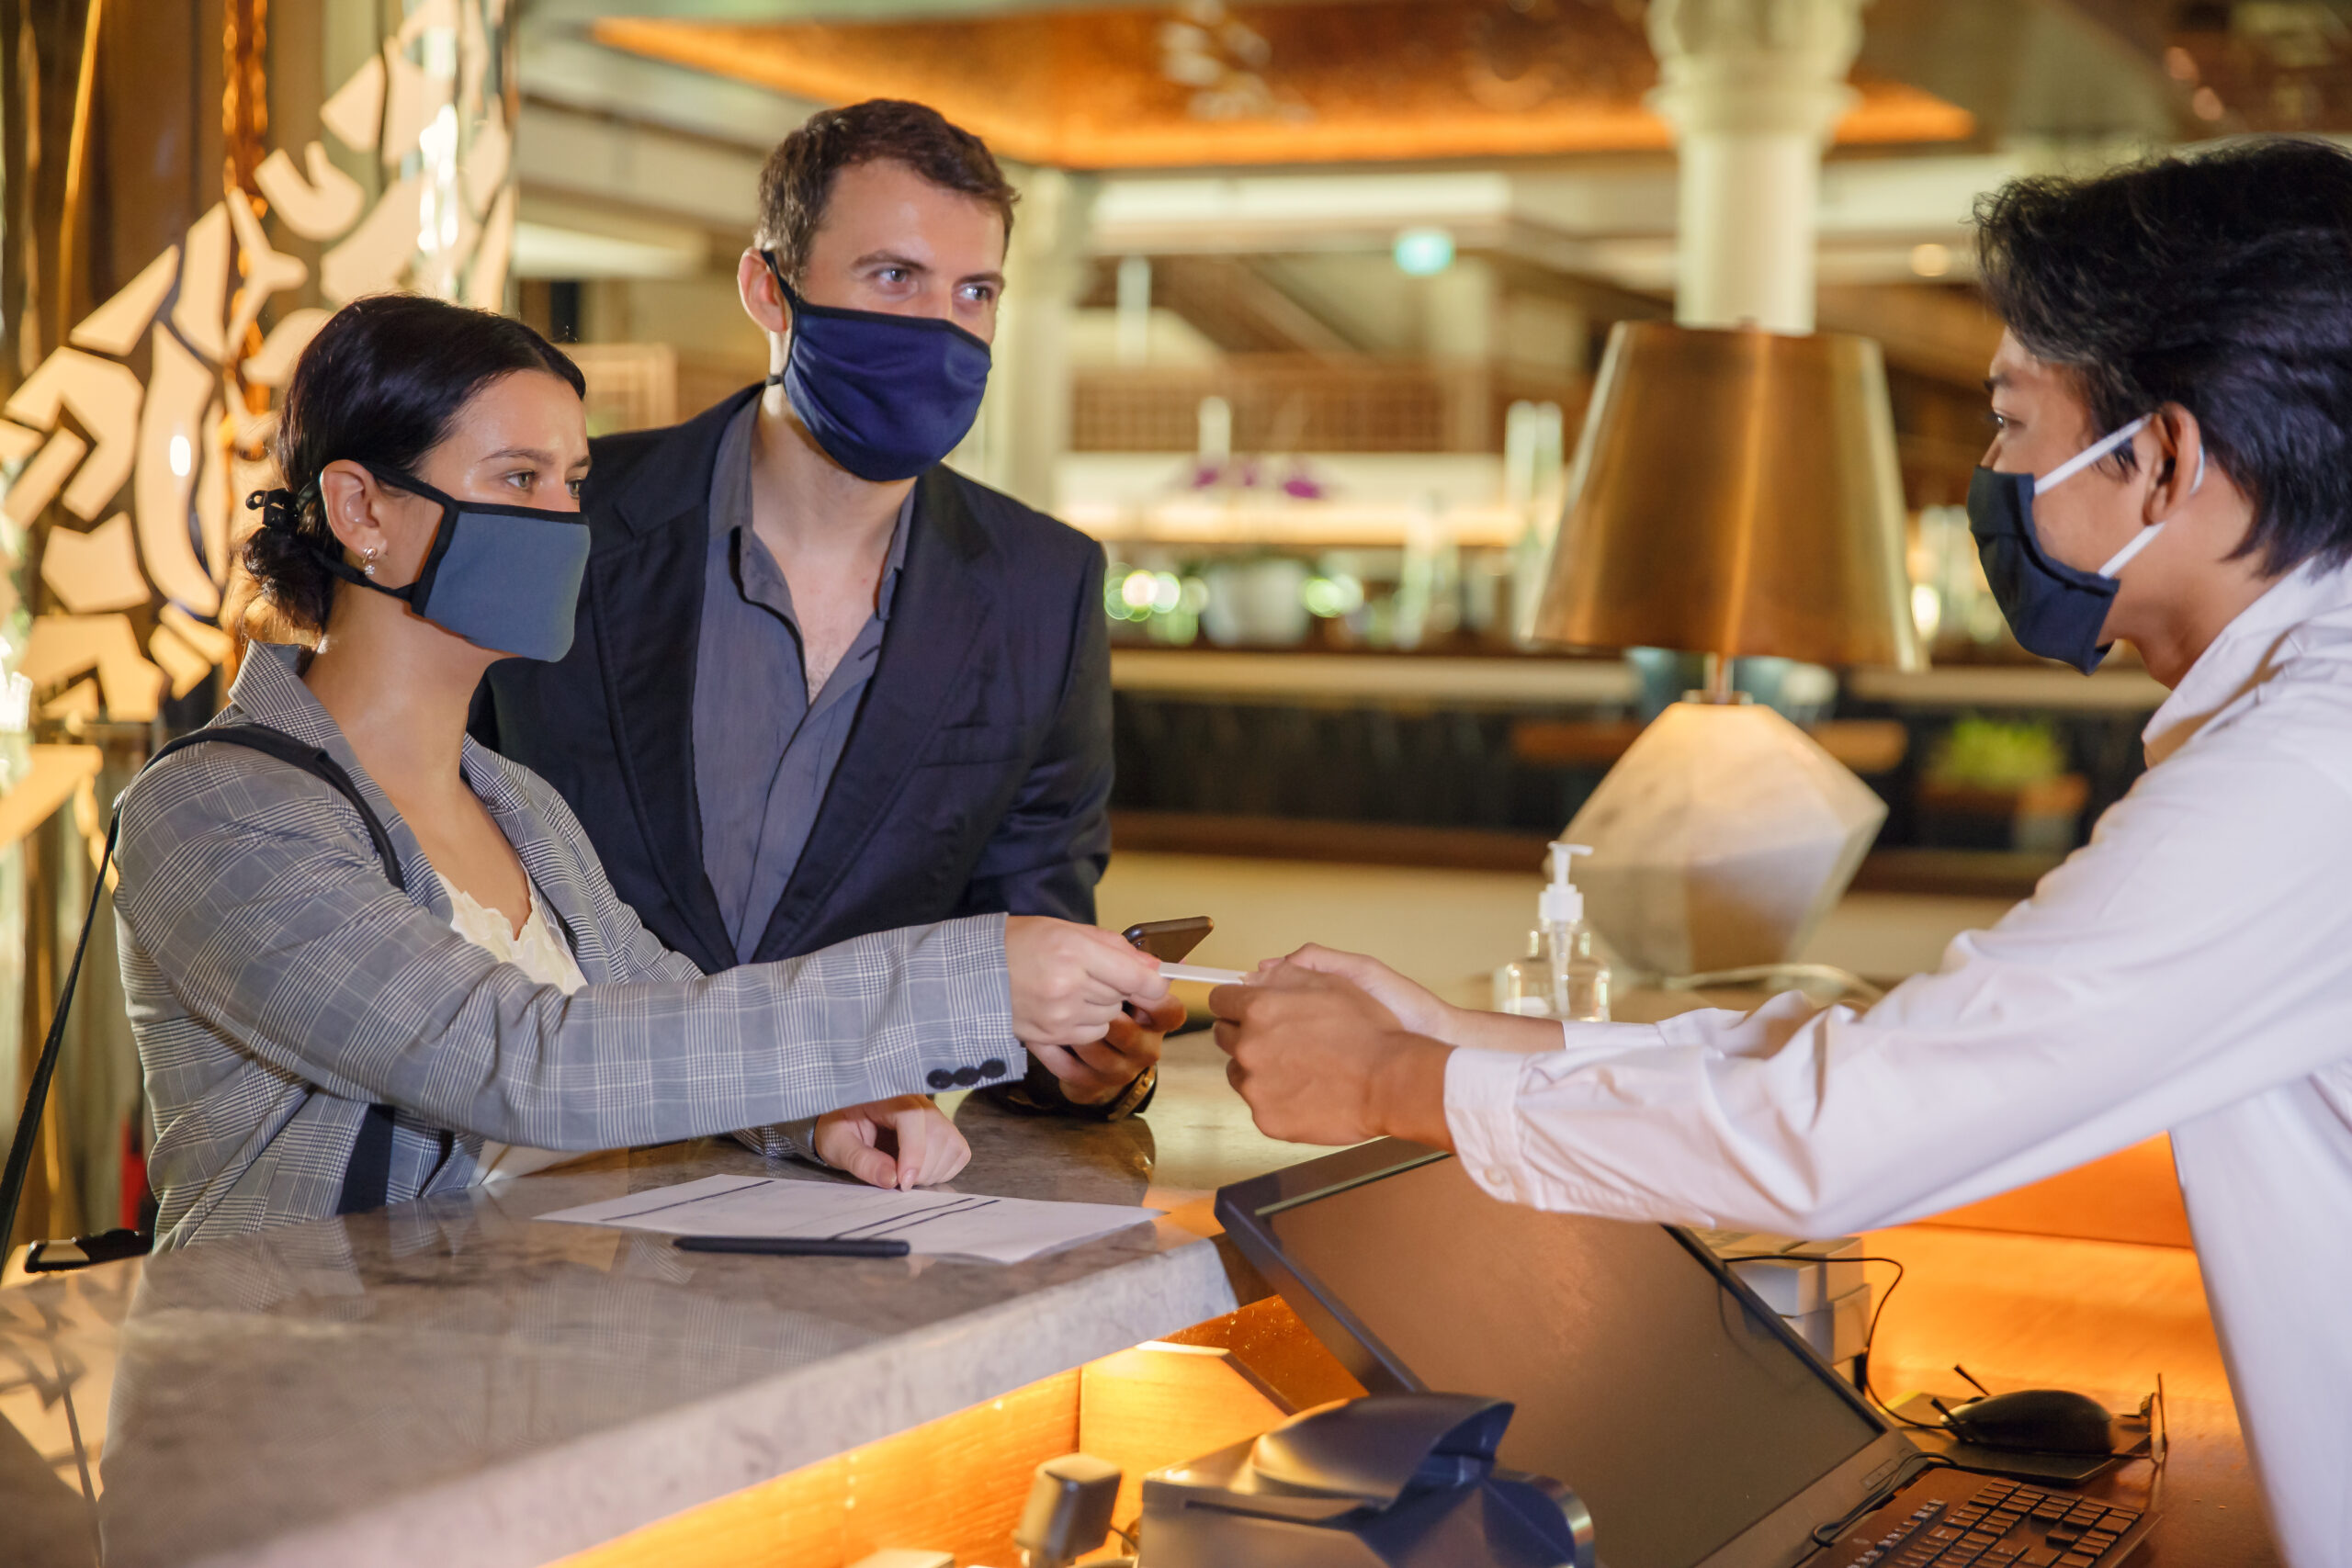 Checking into a hotel is relatively low risk if everyone is using a mask.